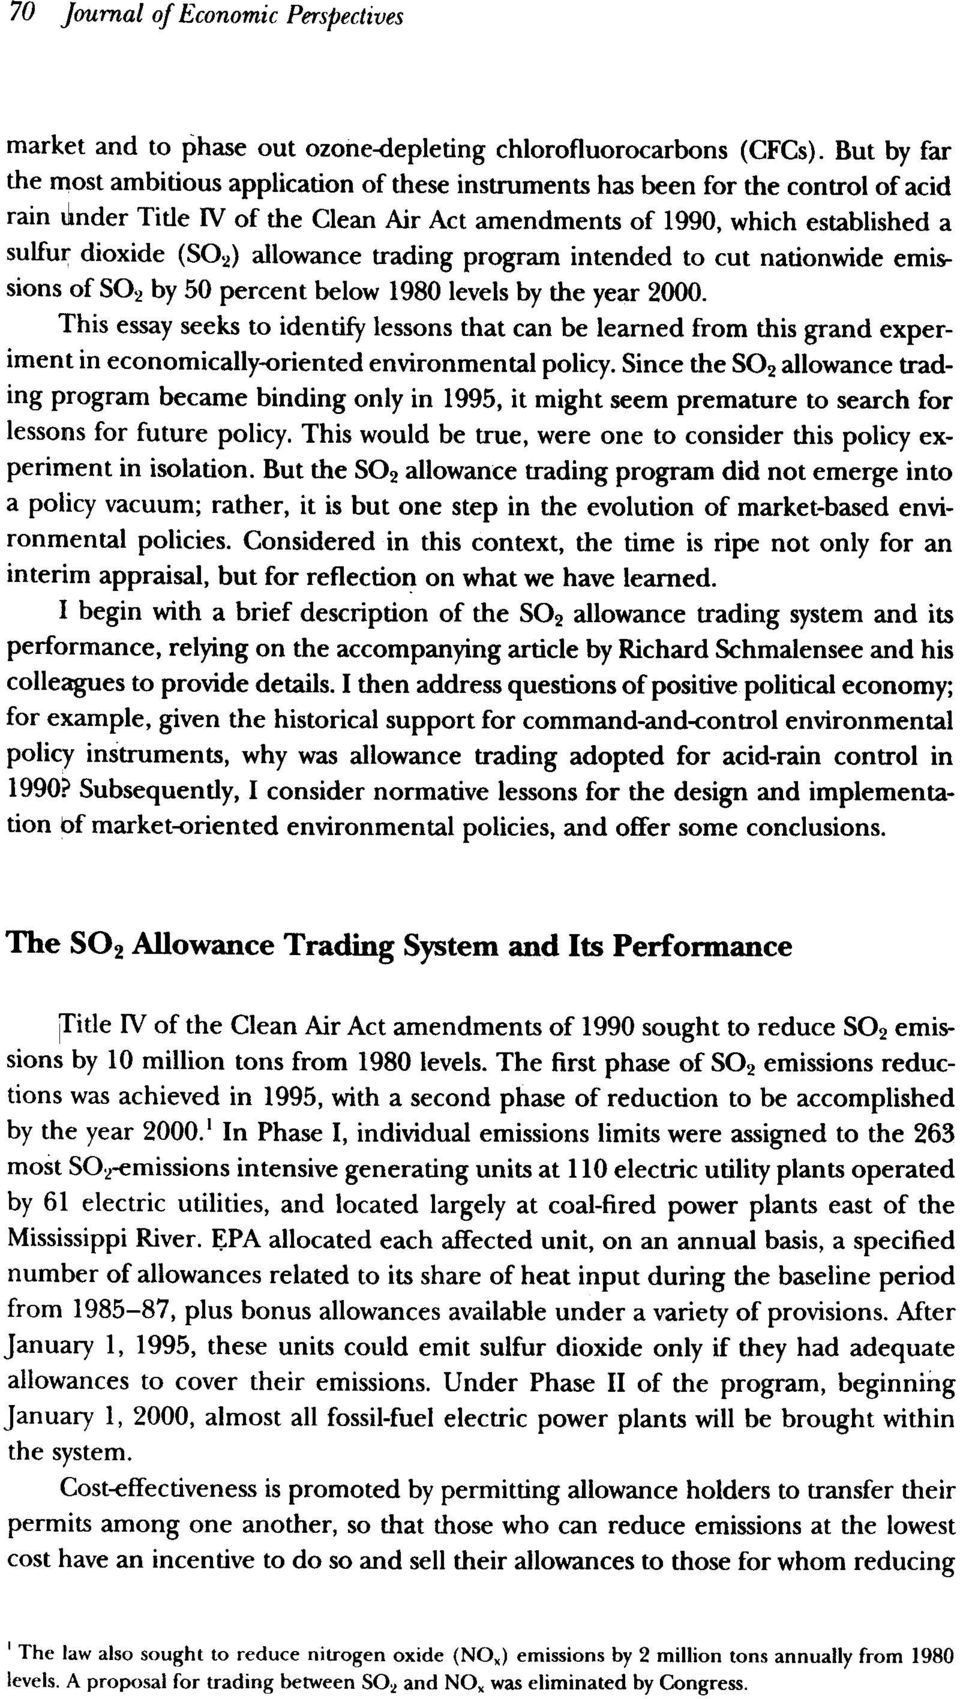 allowance trading program intended to cut nationwide emissions of S02 by 50 percent below 1980 levels by the year 2000.